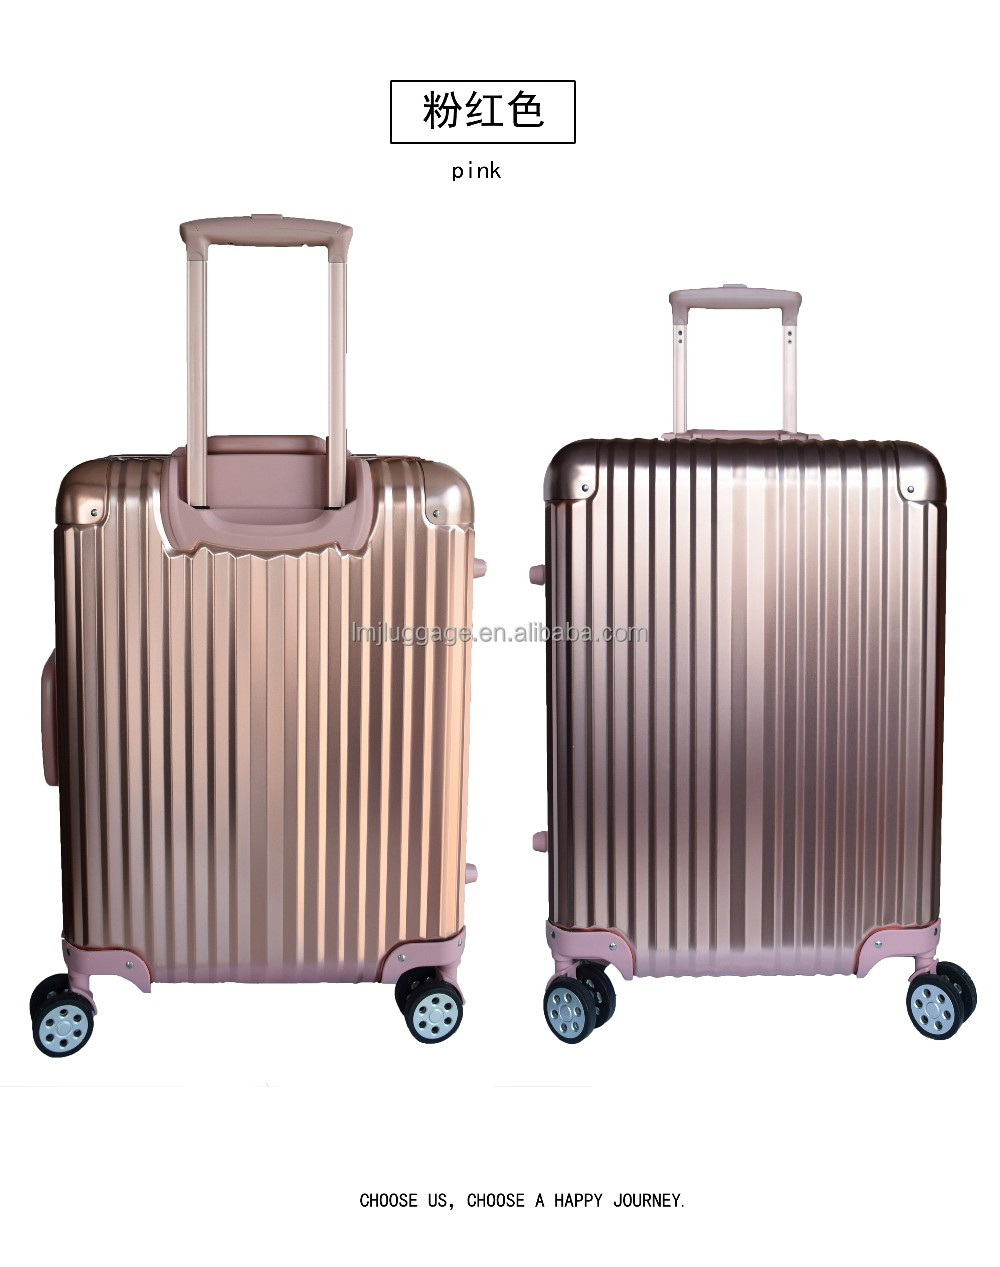 aluminum us polo price cabin wheeled carry polo trolley luggage with secret compartment